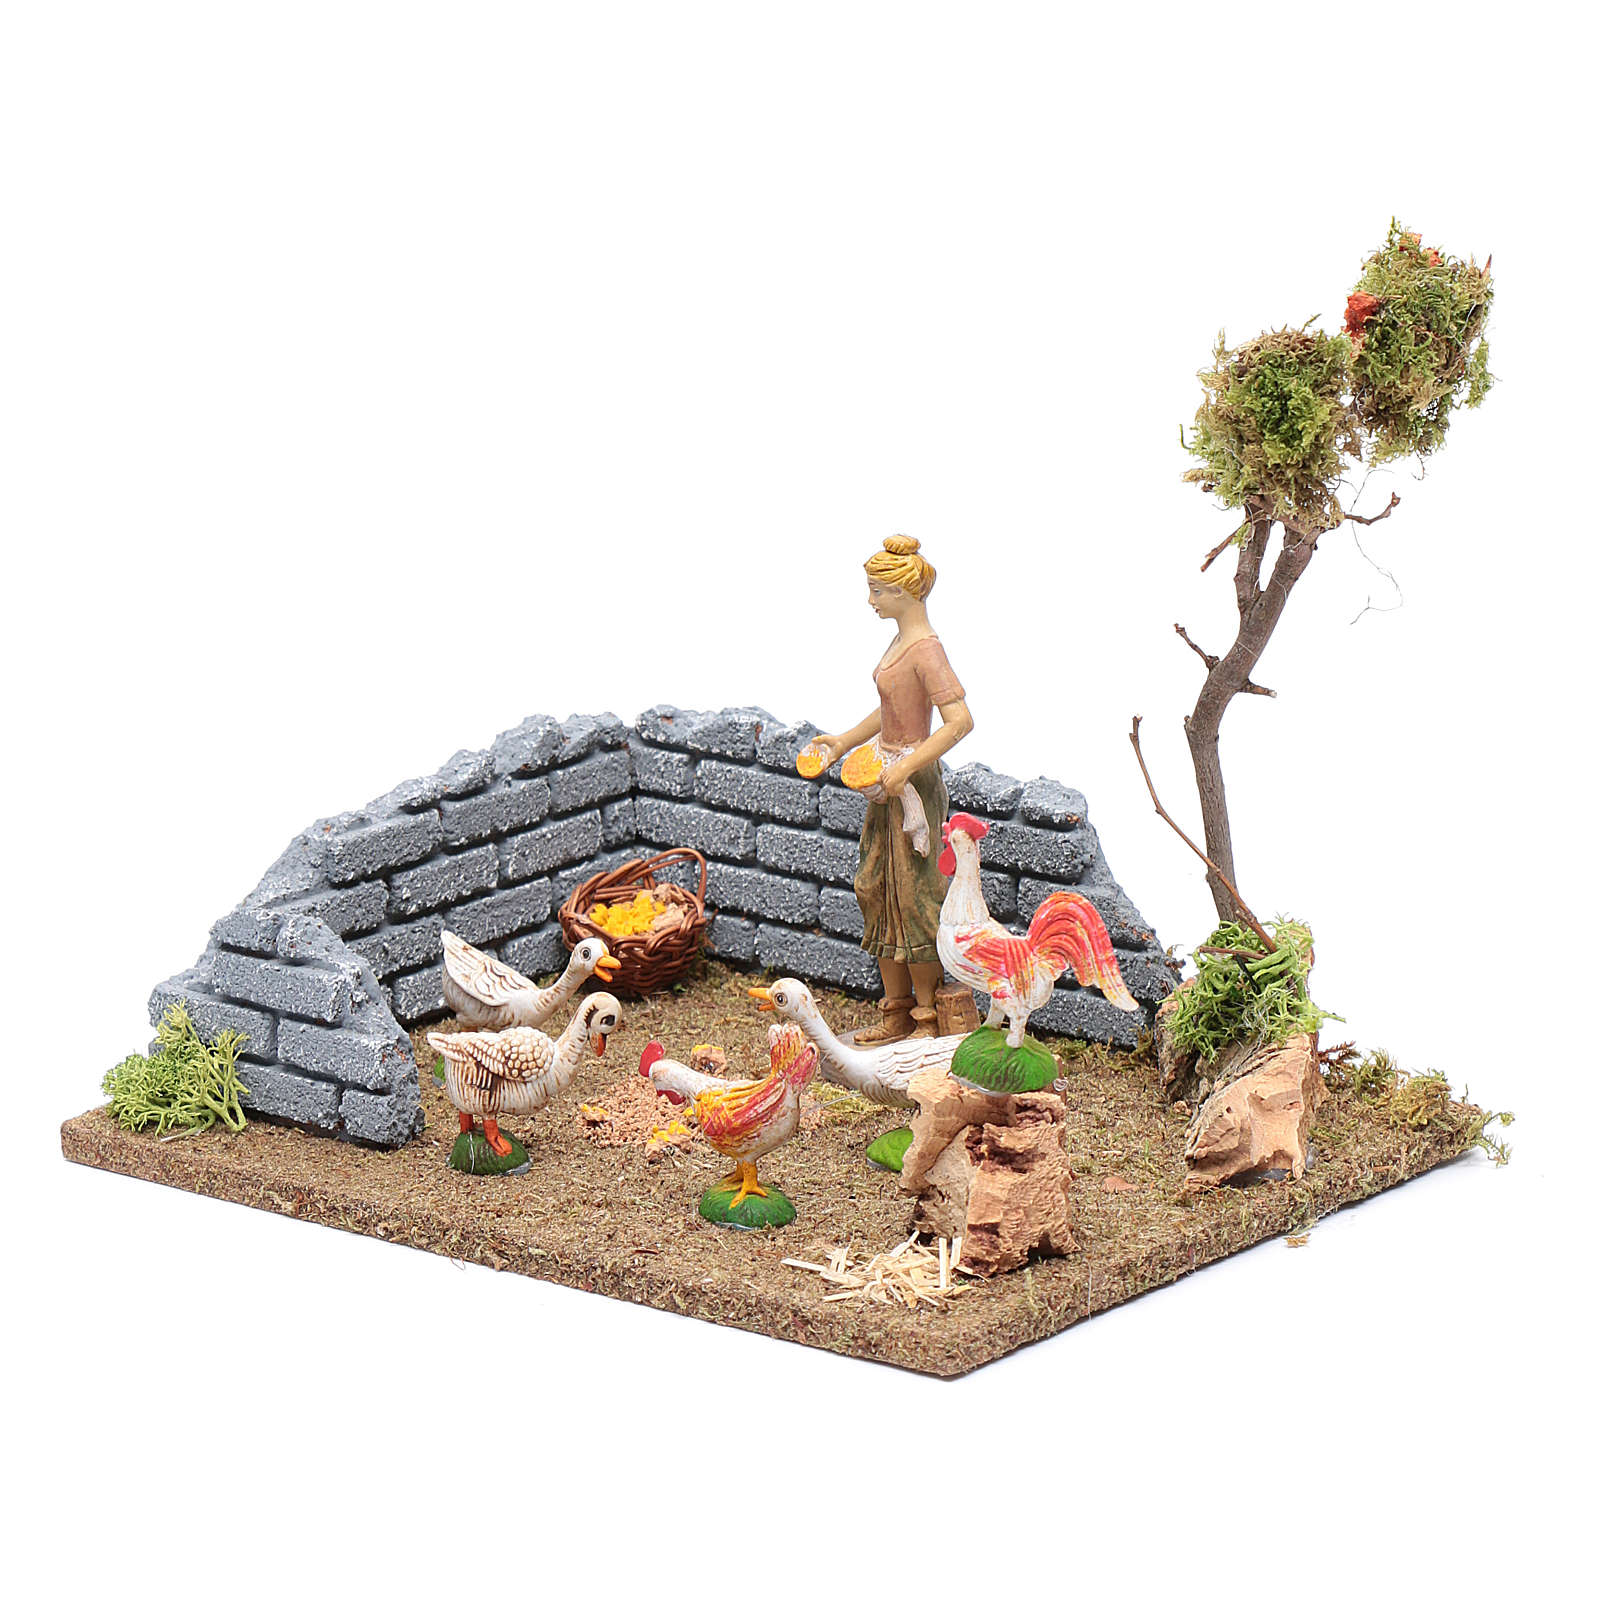 Countrywoman in henhouse for nativity scene 15x20x15 cm 3